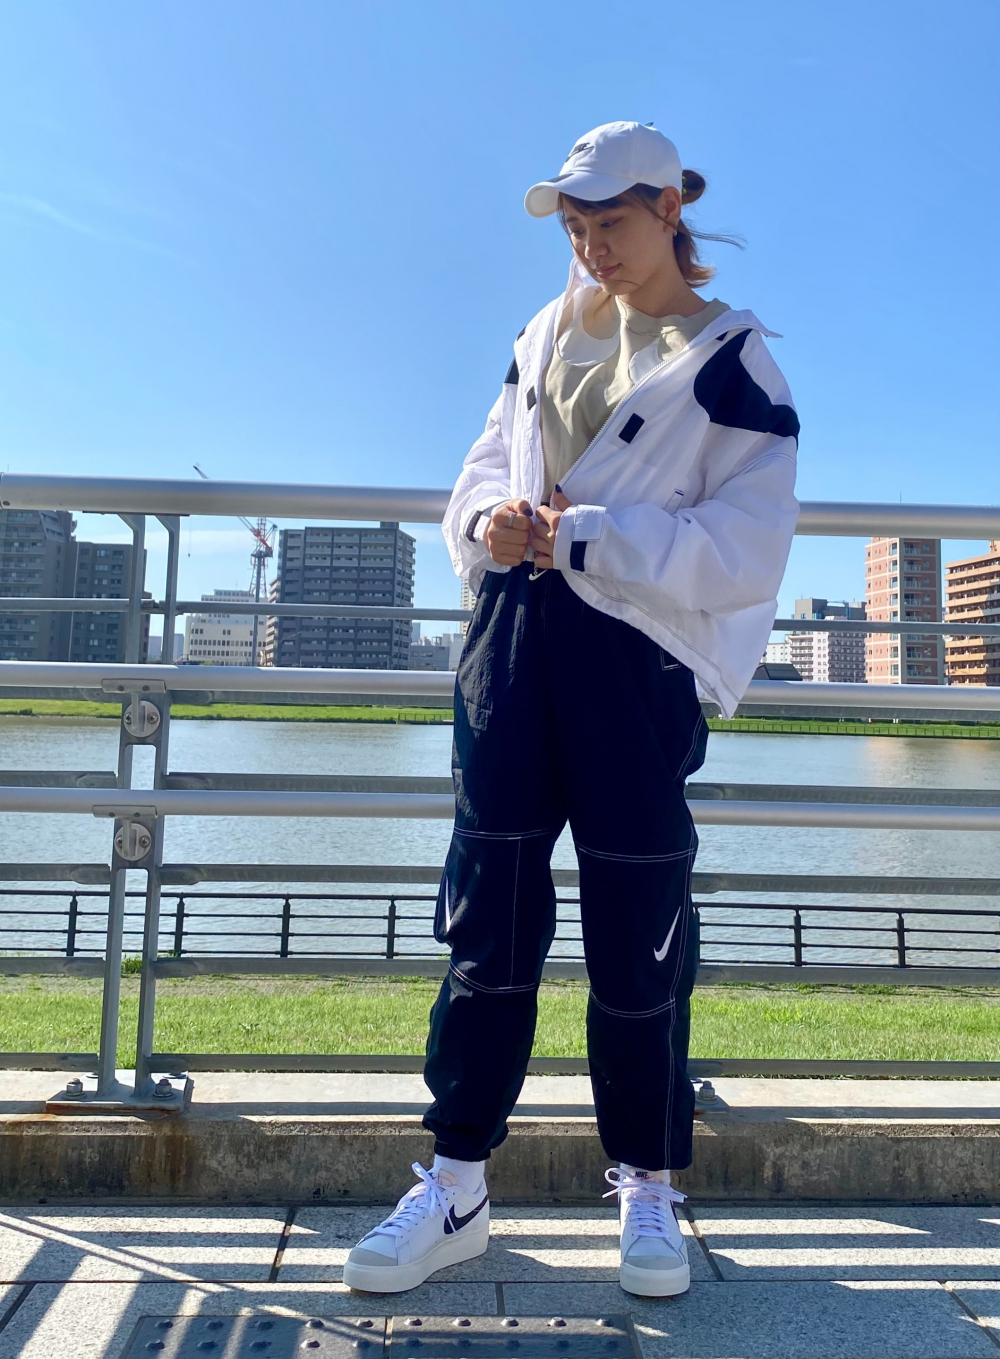 【NIKE】8/28Recommend